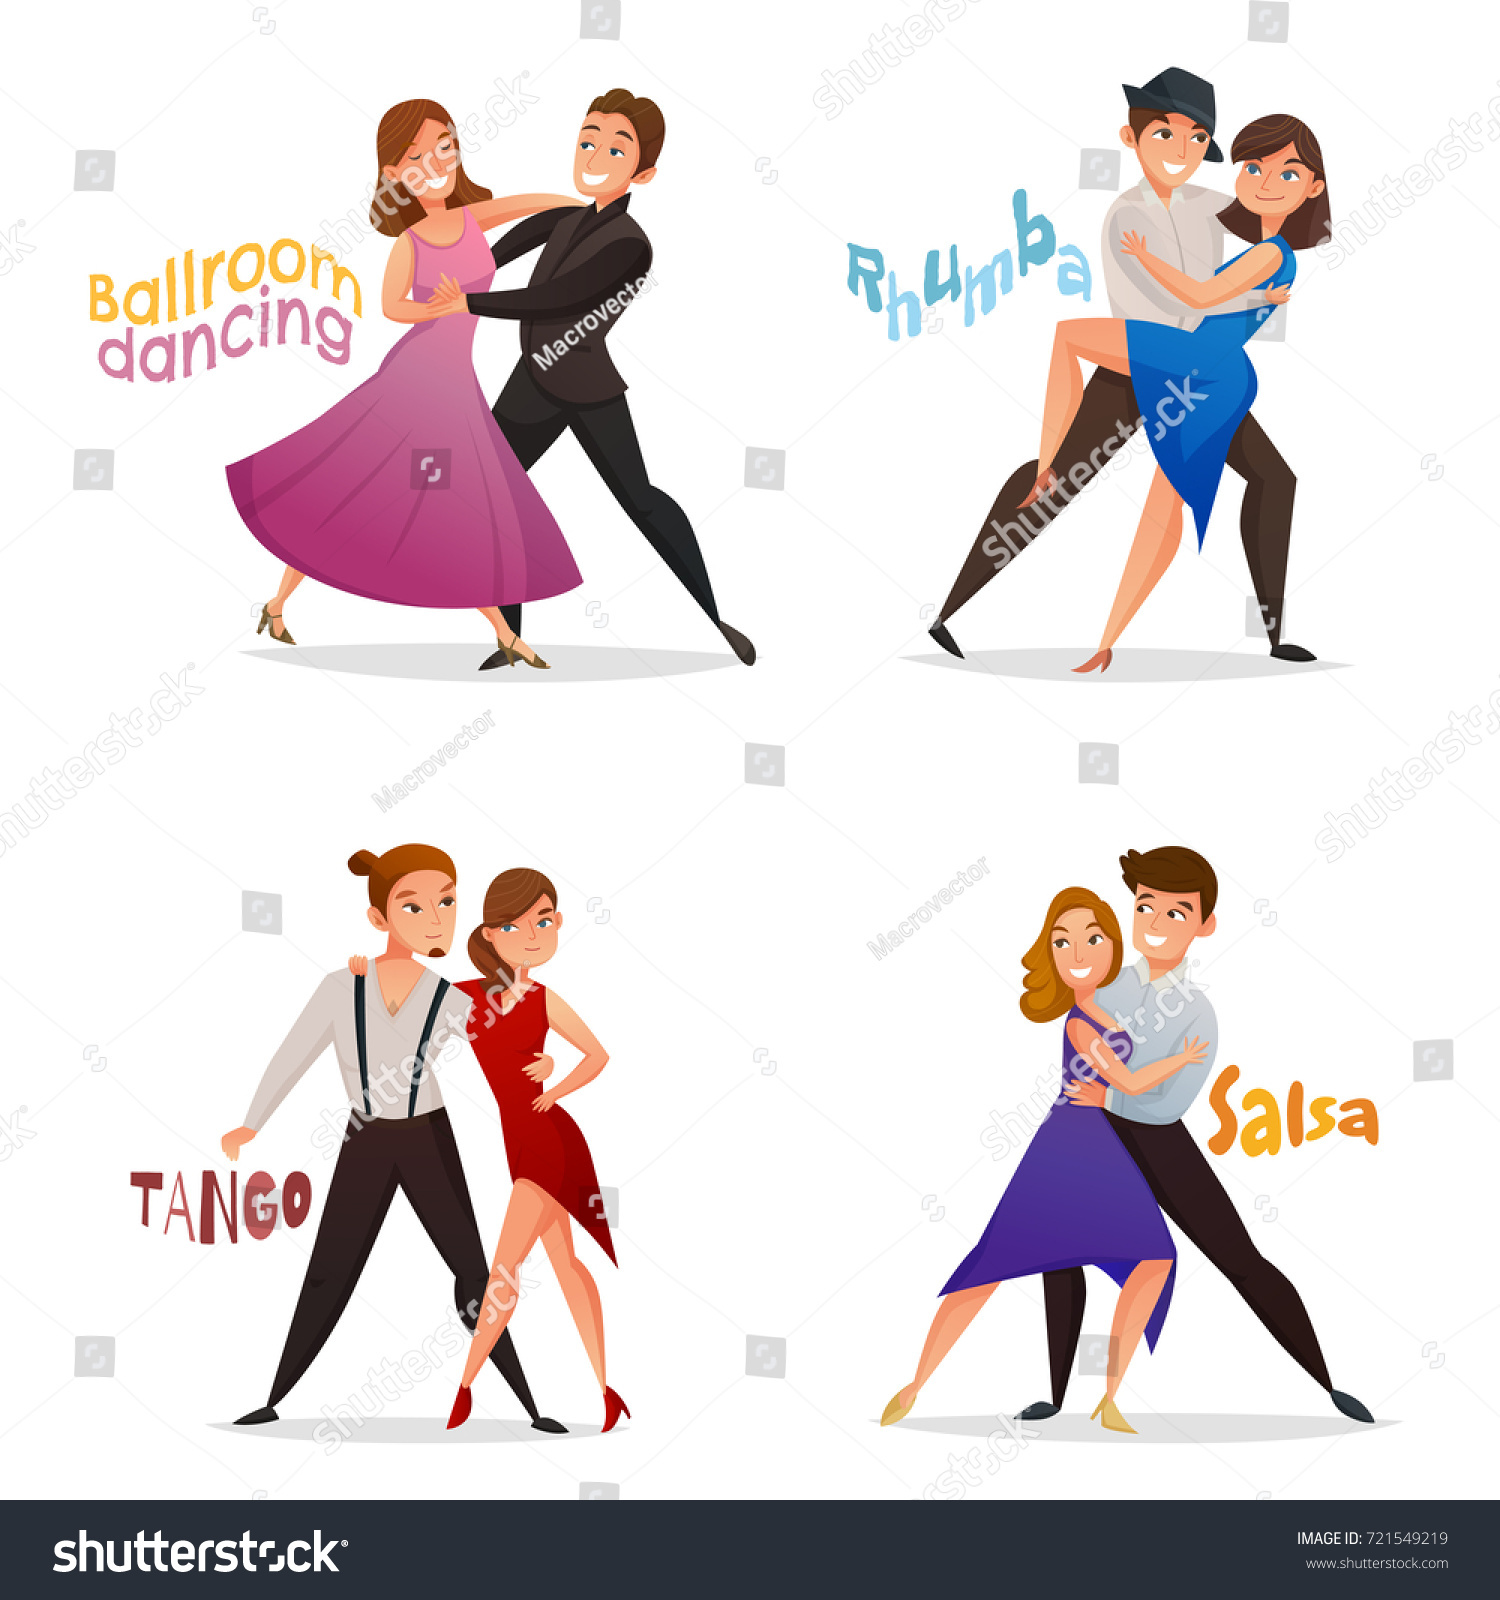 Stock Vector Dancing Pairs Retro Cartoon Icons Set With Tango Salsa And Ballroom Waltz Steps Isolated Vector on Country Waltz Dance Steps Diagram